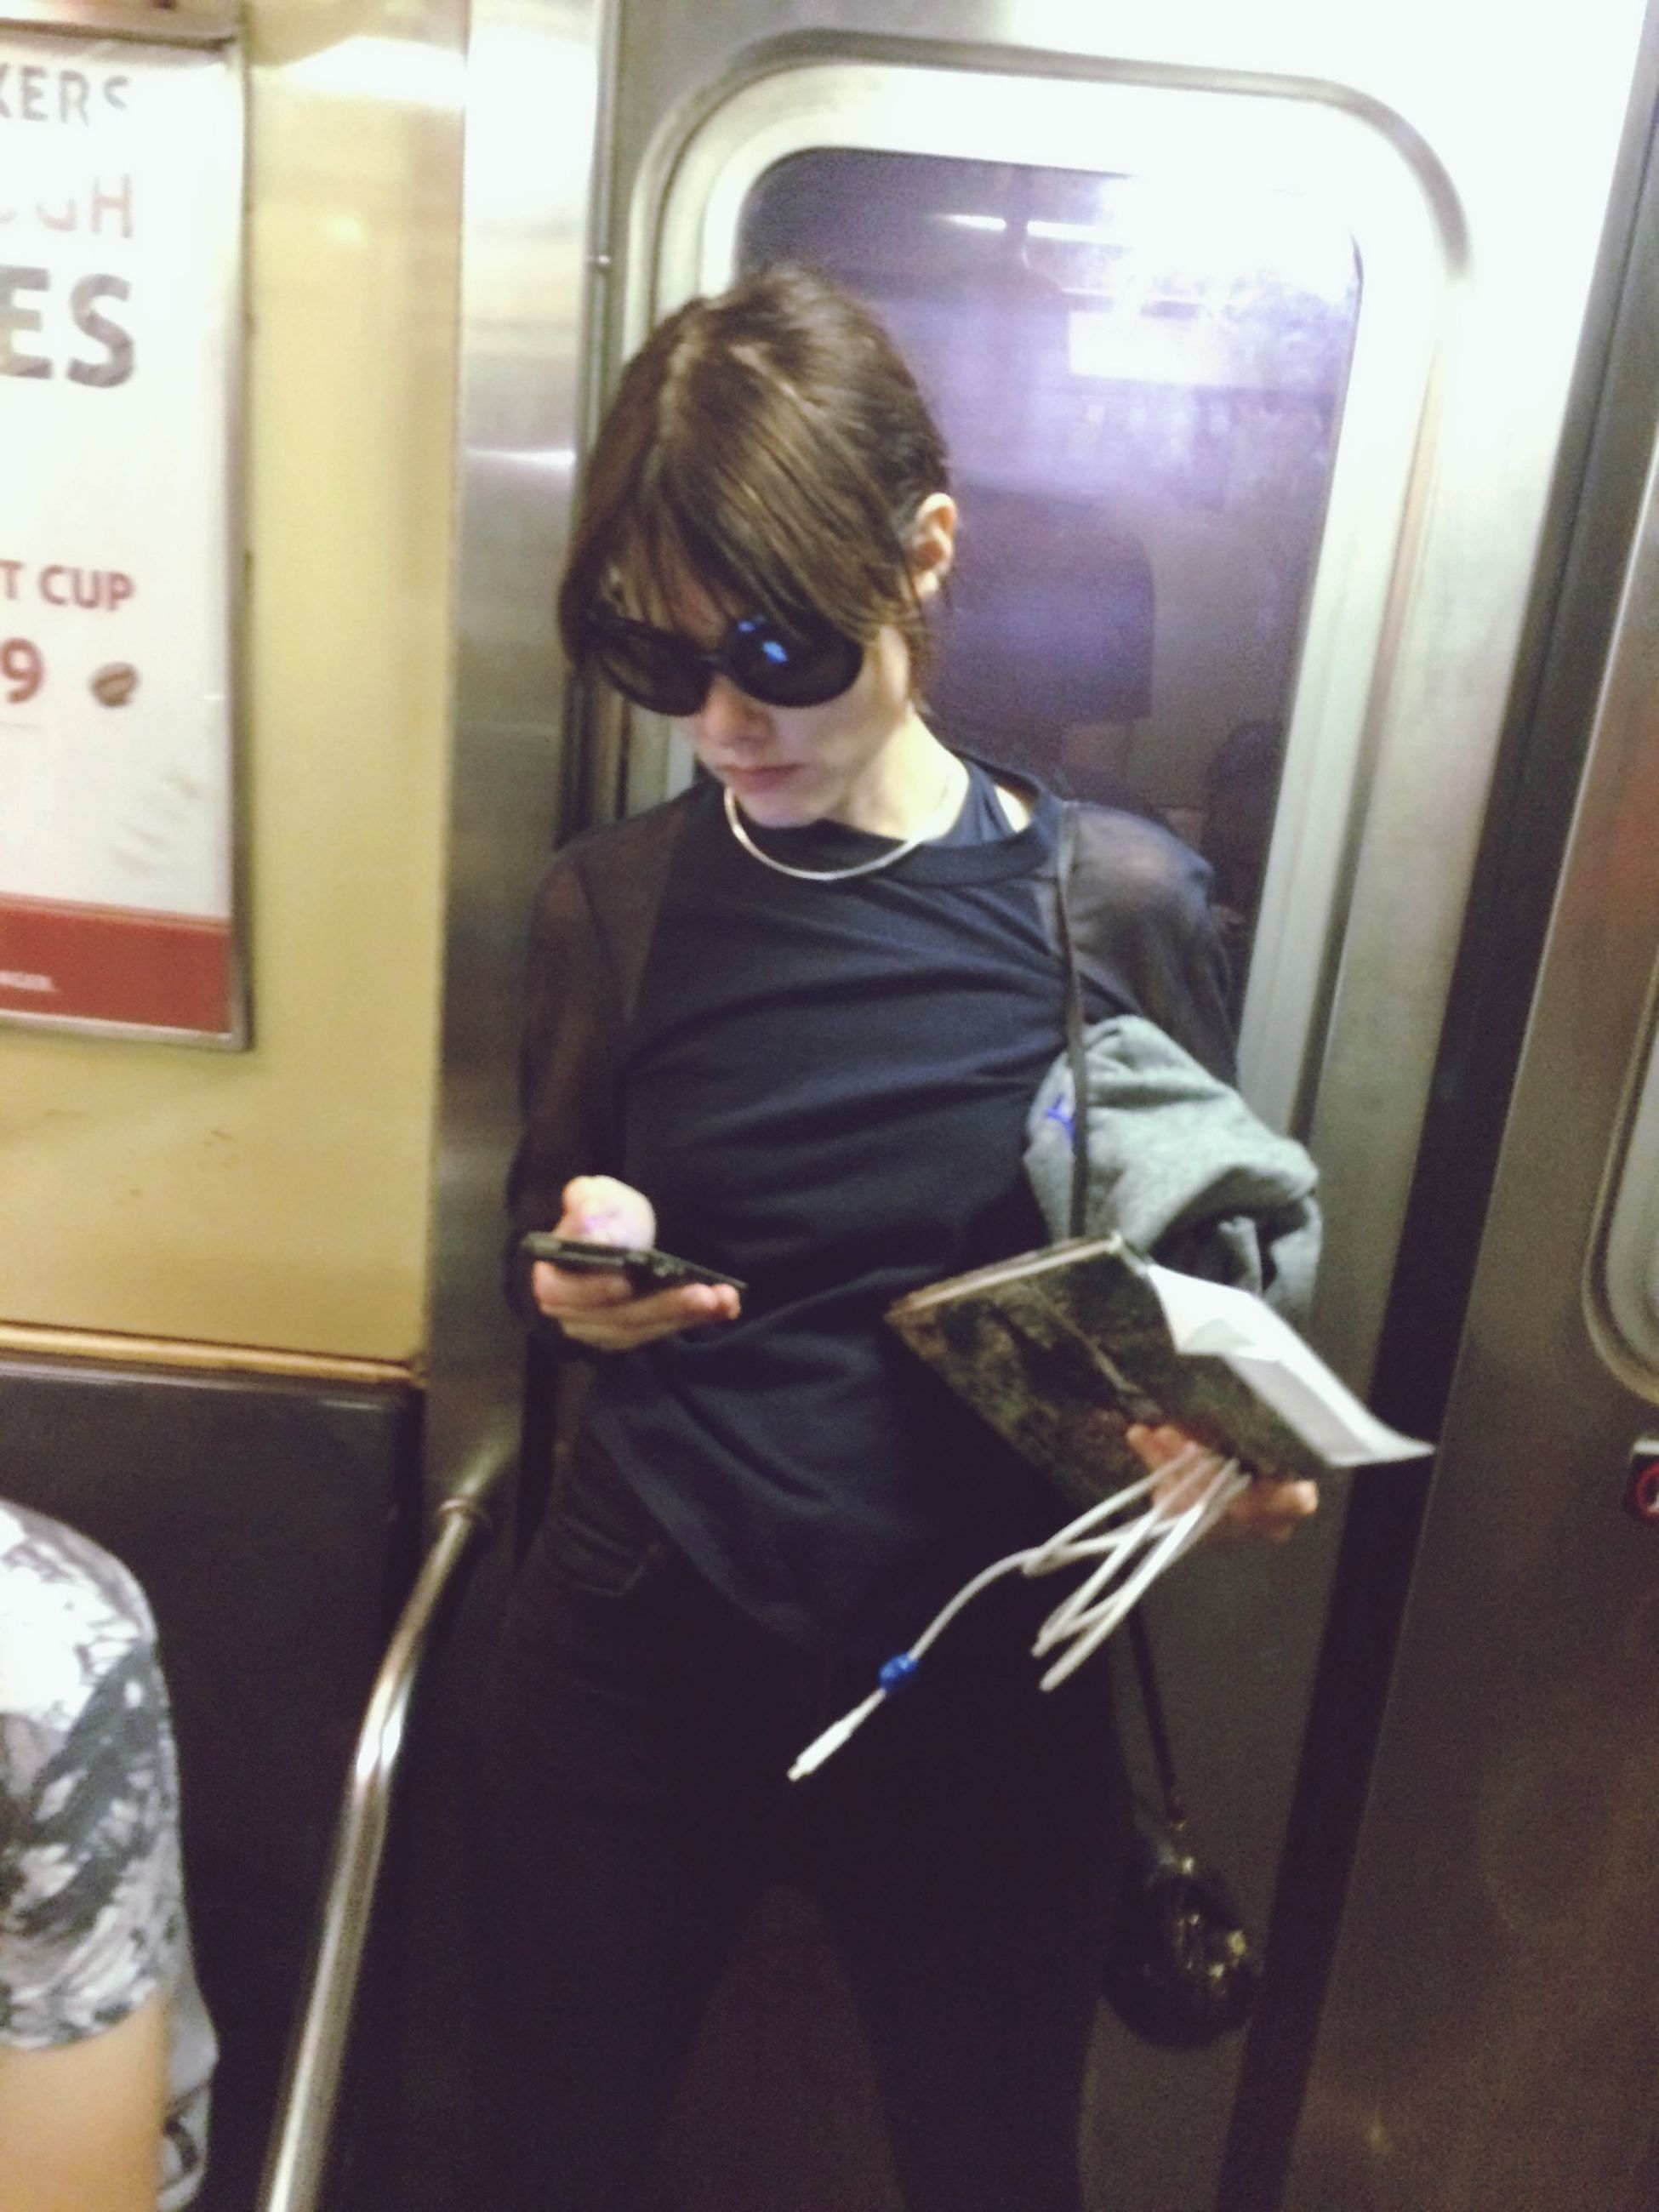 indoors, transportation, lifestyles, vehicle interior, mode of transport, public transportation, casual clothing, travel, technology, young adult, window, leisure activity, train - vehicle, three quarter length, person, holding, sitting, glass - material